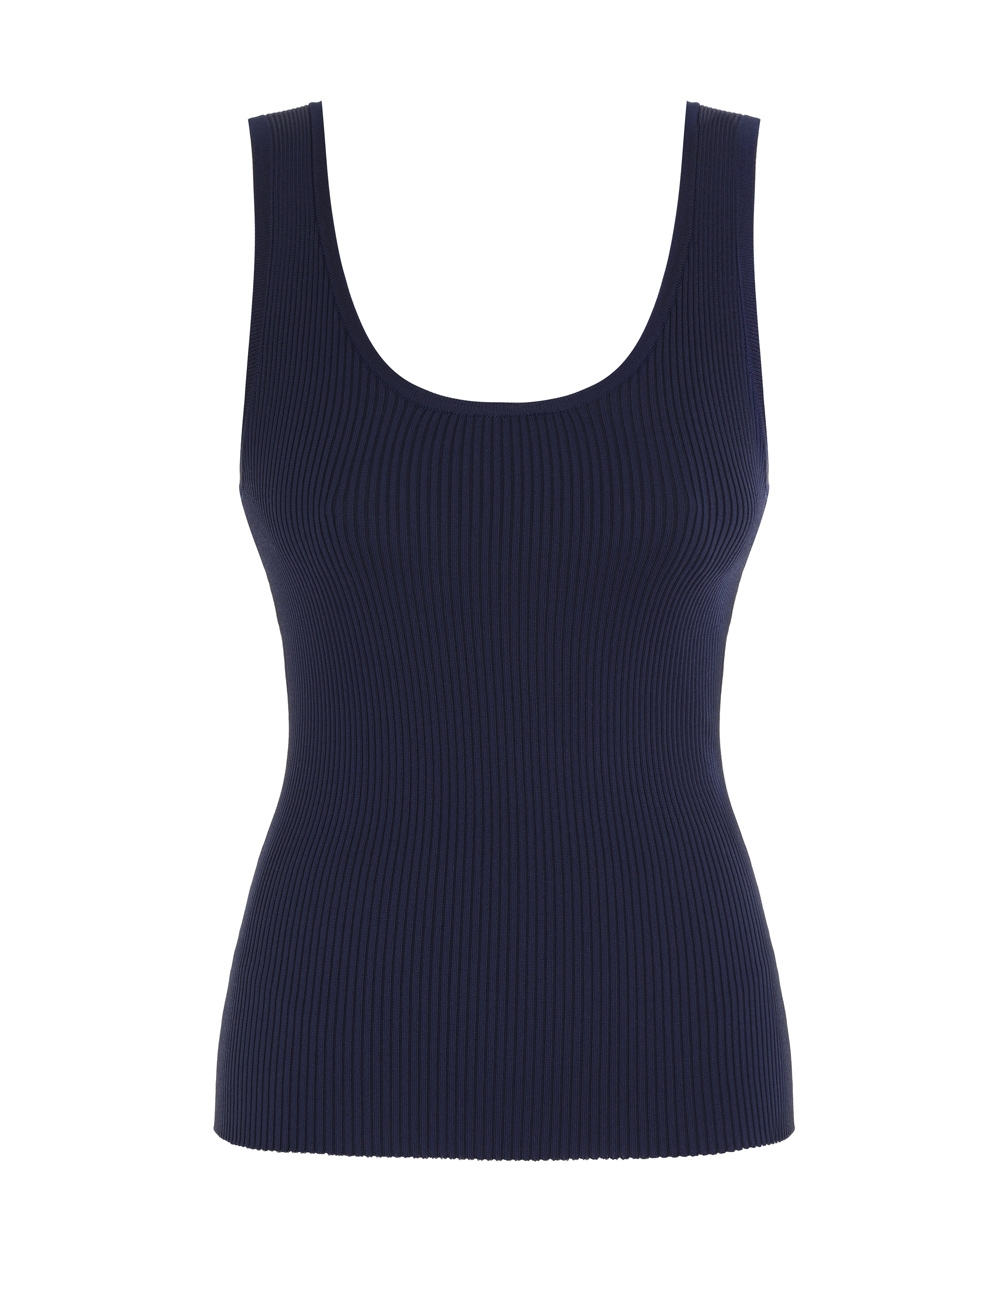 Aliane Scoop Neck